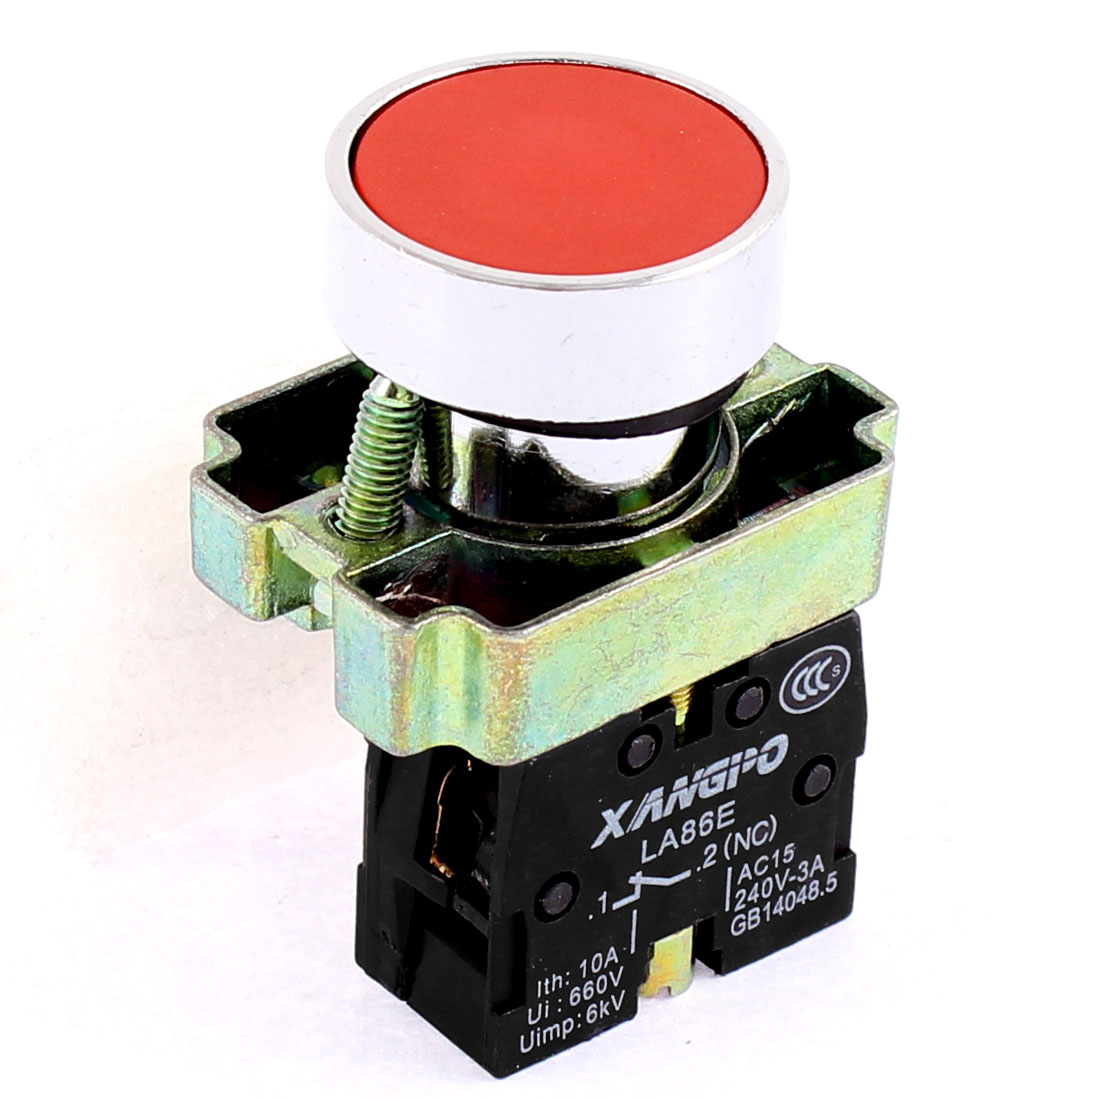 660V 10A 2 Terminal Self-locking NC Emergency Stop Push Button Switch